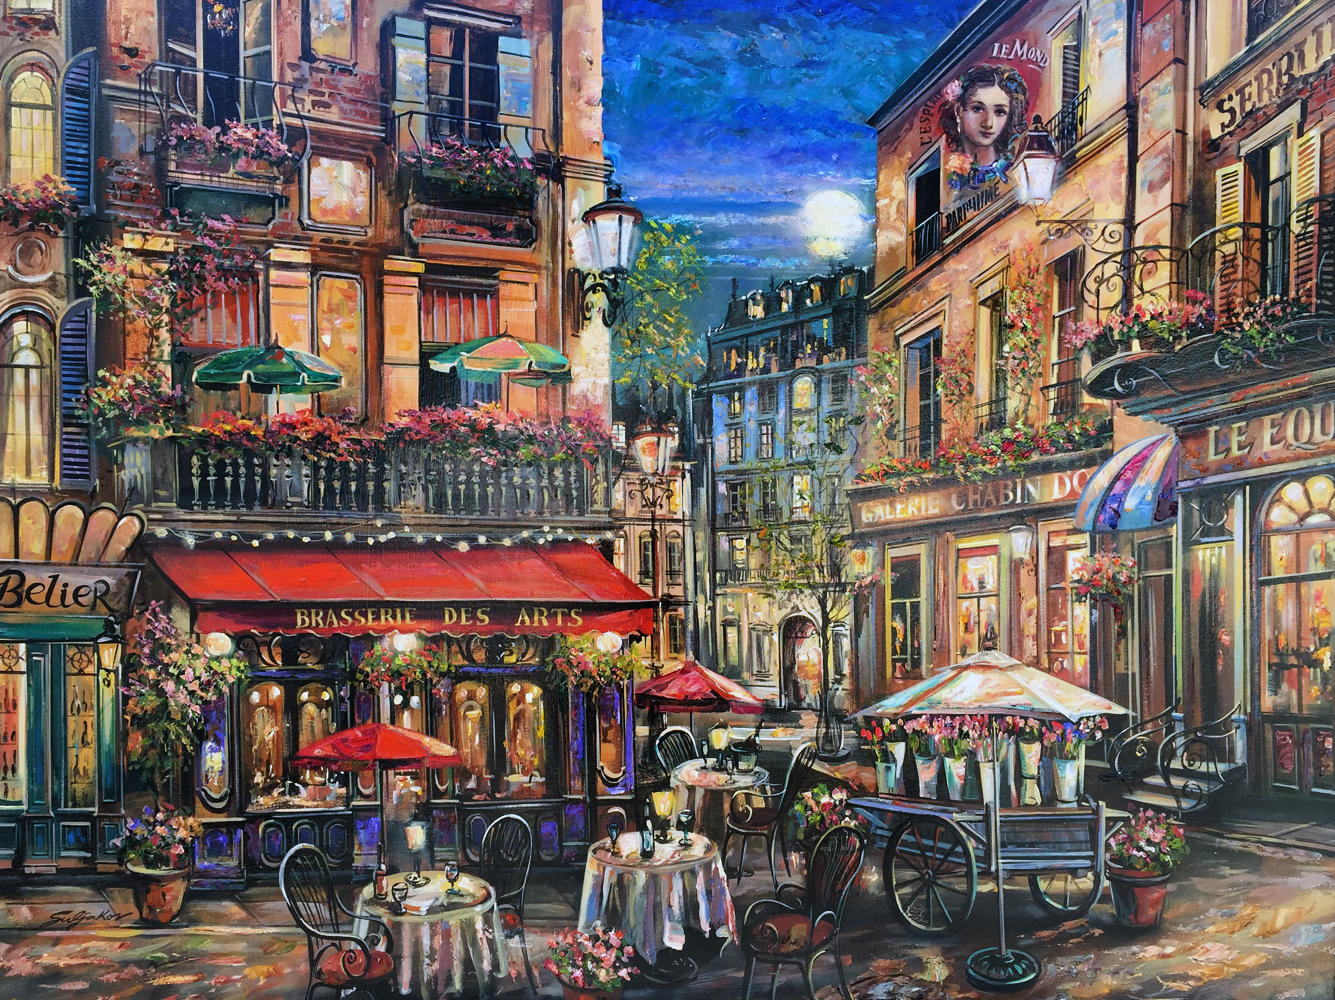 Brasserie des Arts, Paris  2005 36x48